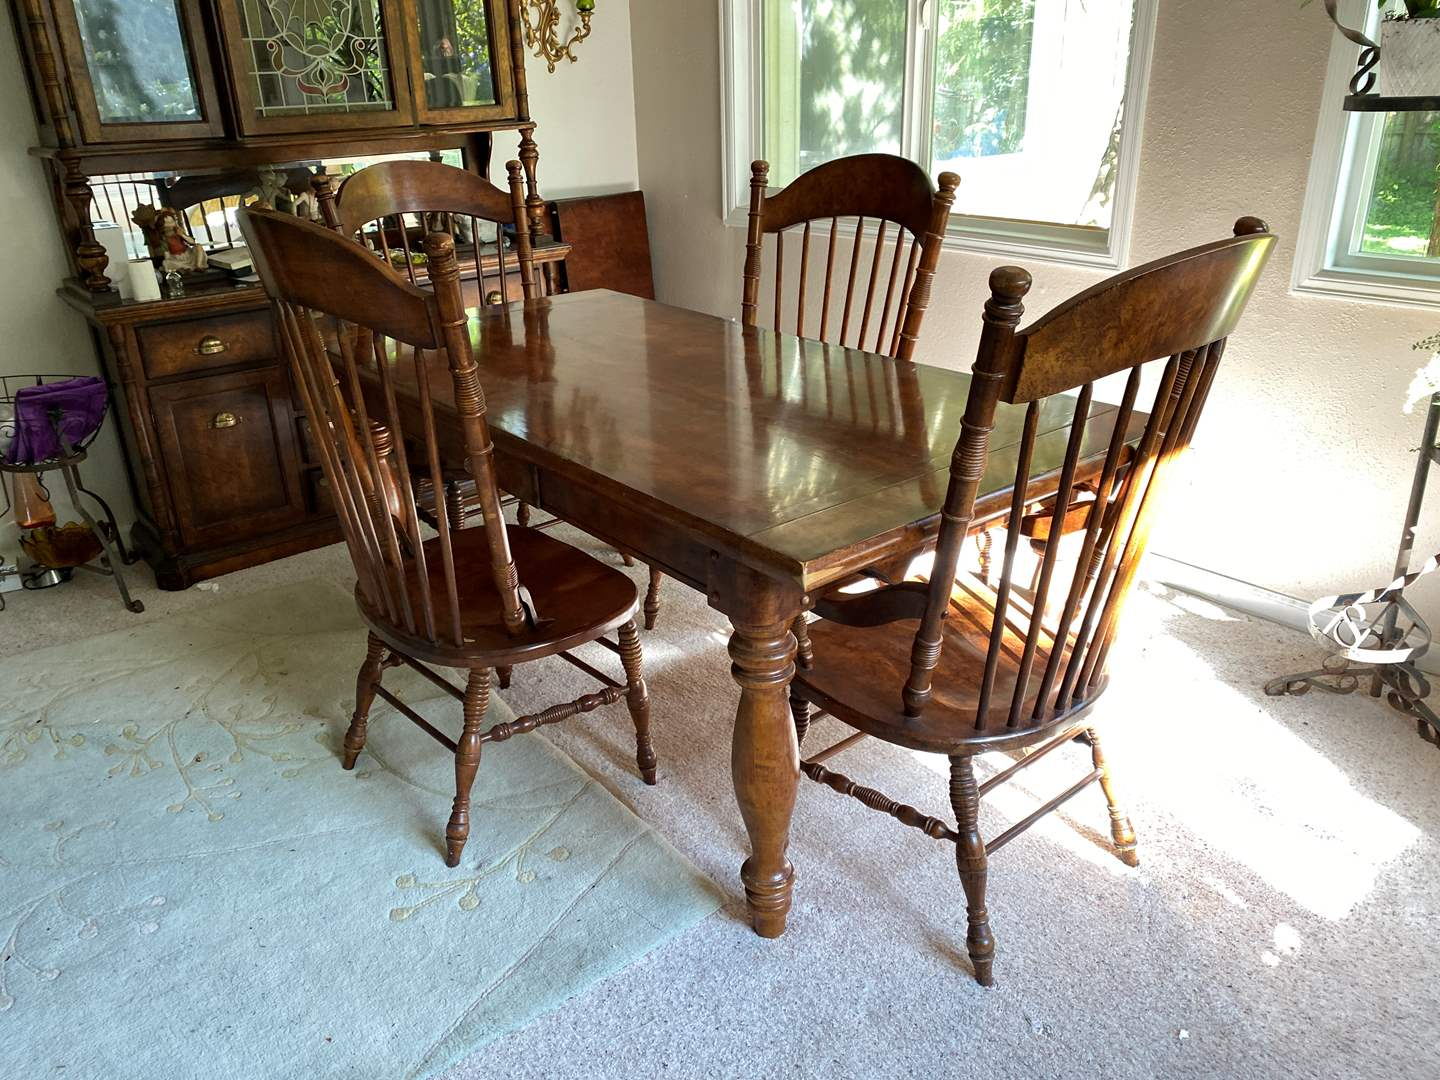 Lot # 1 - Nice Vintage Pecan Wood Dining Room Table & Chairs w/Slide Out Ends for Leaves (main image)